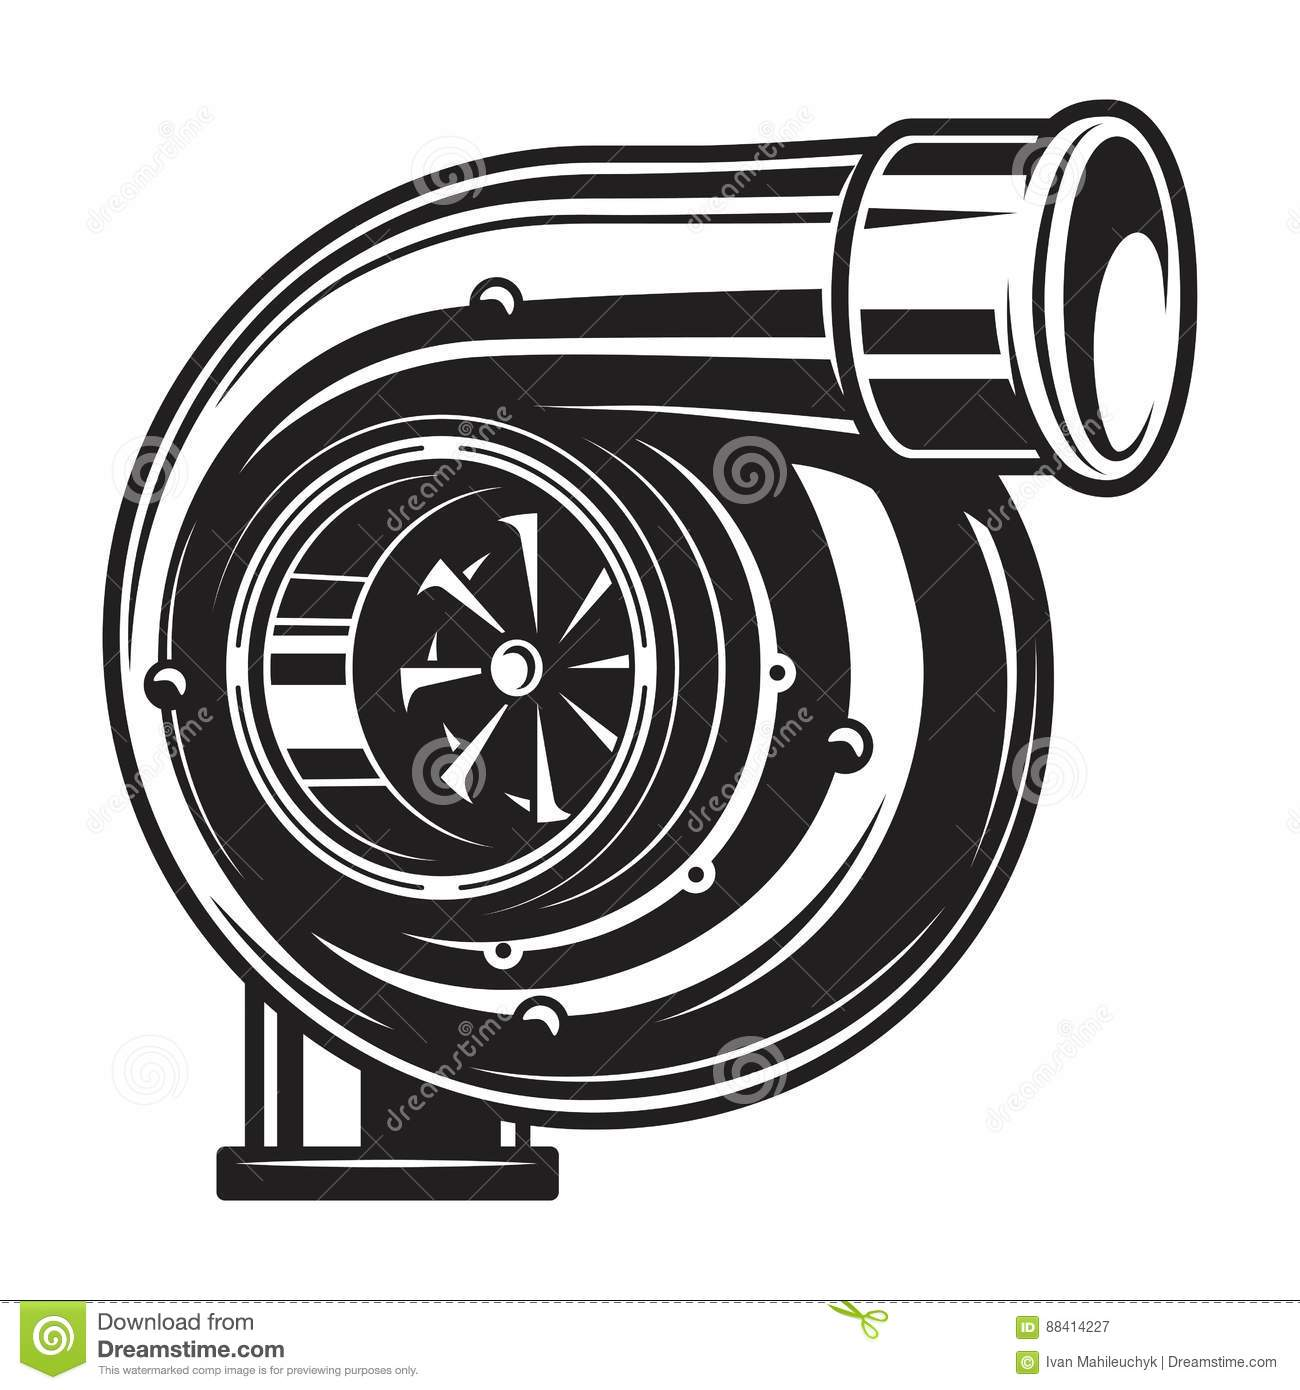 Isolated Monochrome Illustration Of Car Turbo Charger Stock Vector